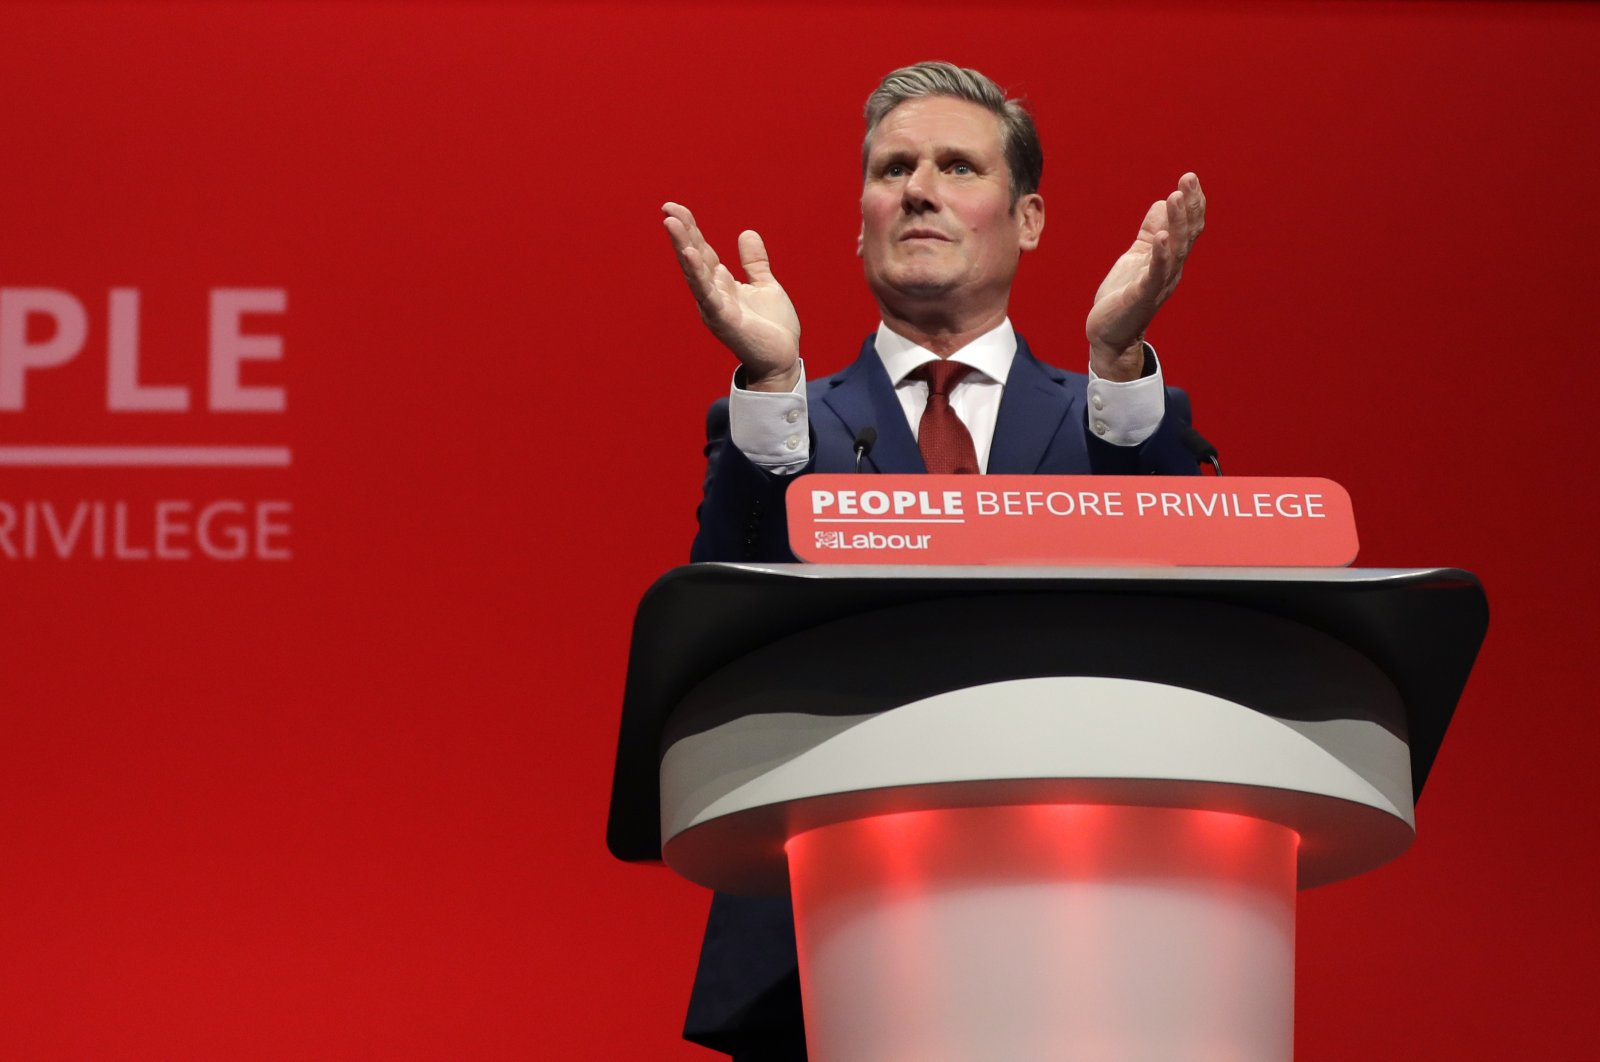 In this Monday, Sept. 23, 2019 file photo, Britain's Shadow Brexit Secretary Keir Starmer speaks on stage during the Labour Party Conference at the Brighton Centre in Brighton, England.(AP Photo)